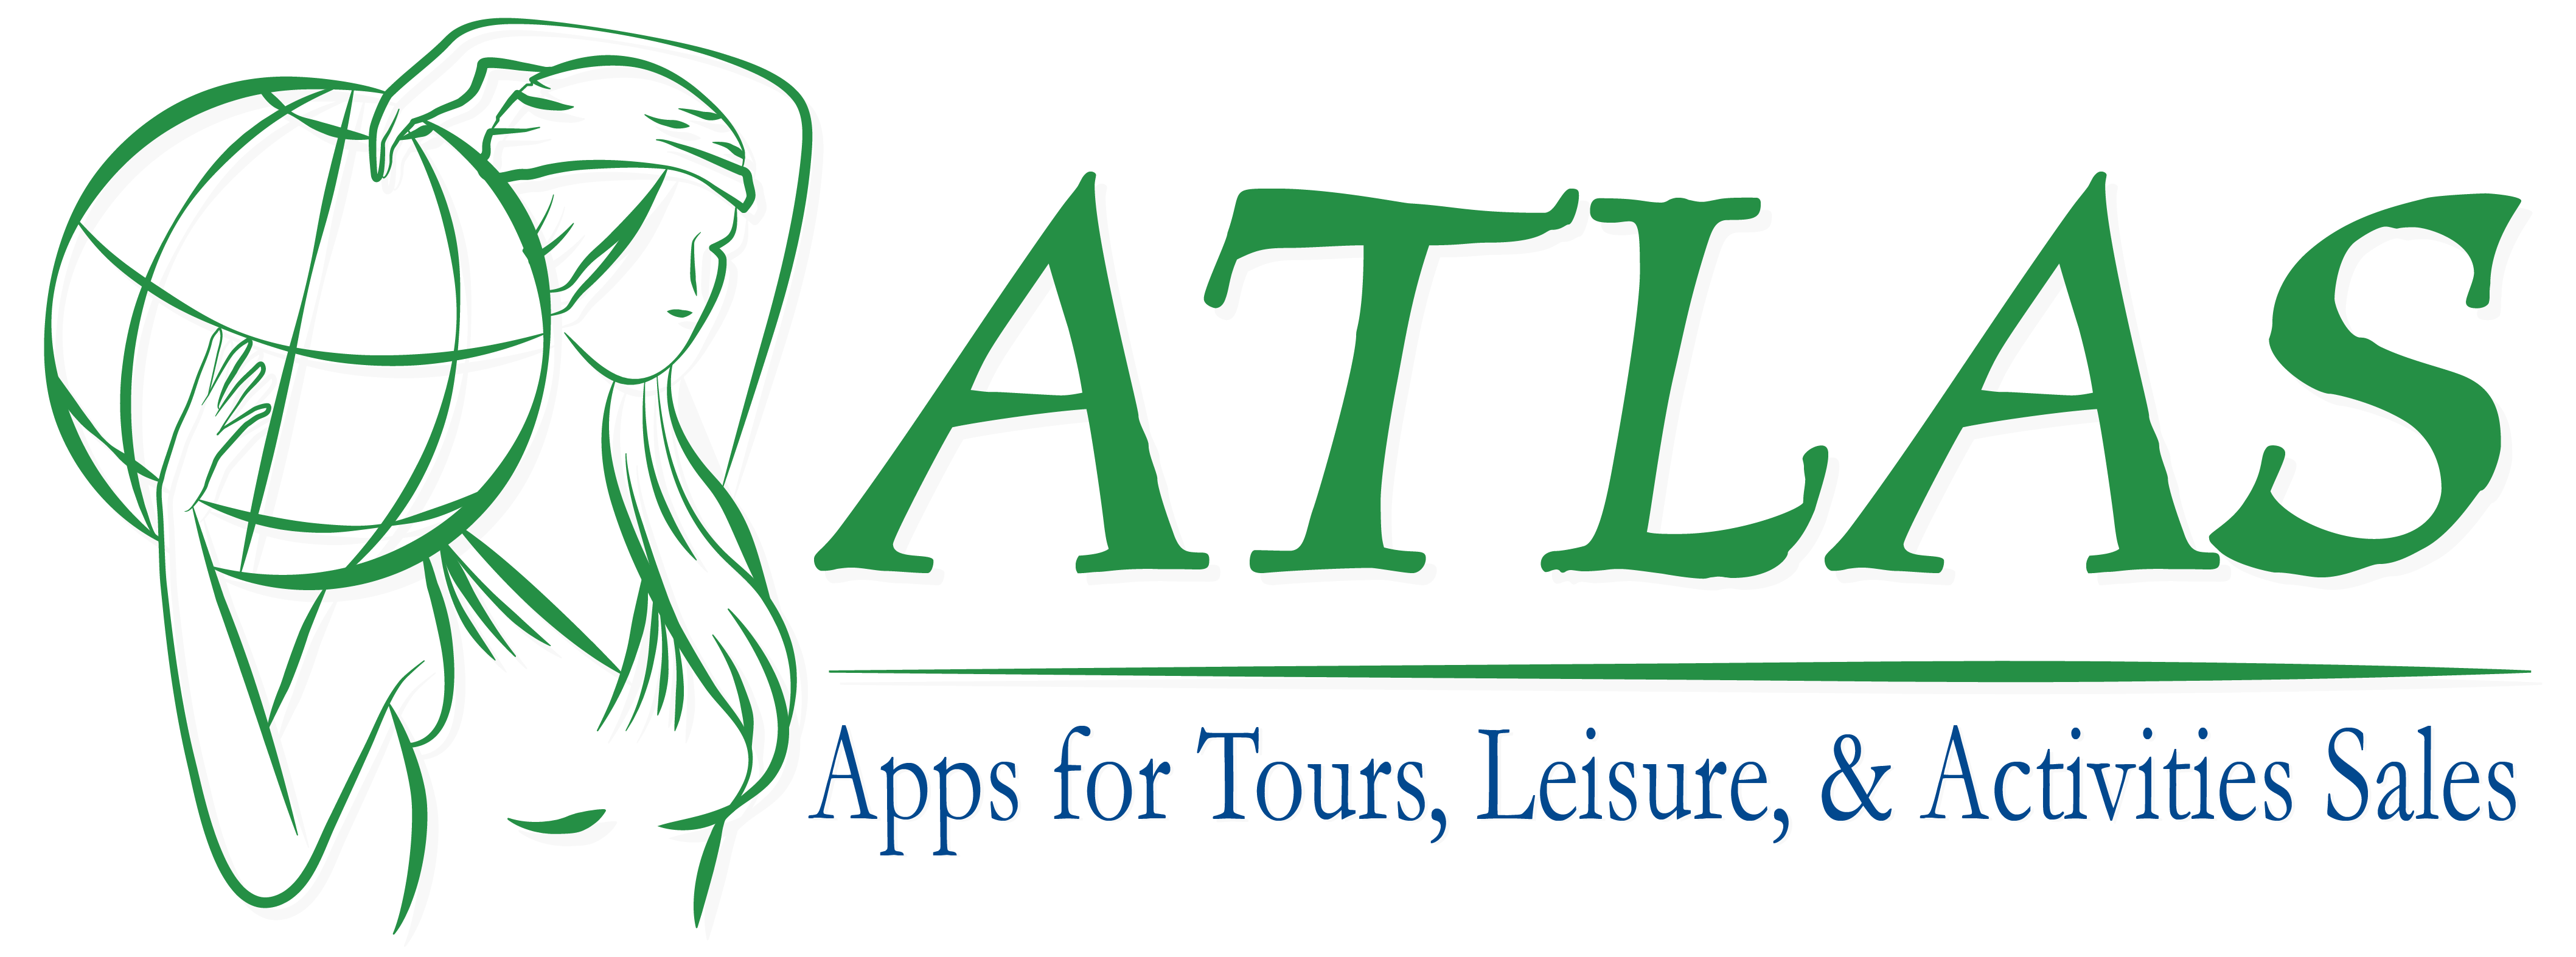 Reservation ATLAS   Apps For Tours, Leisure, & Activities Sales